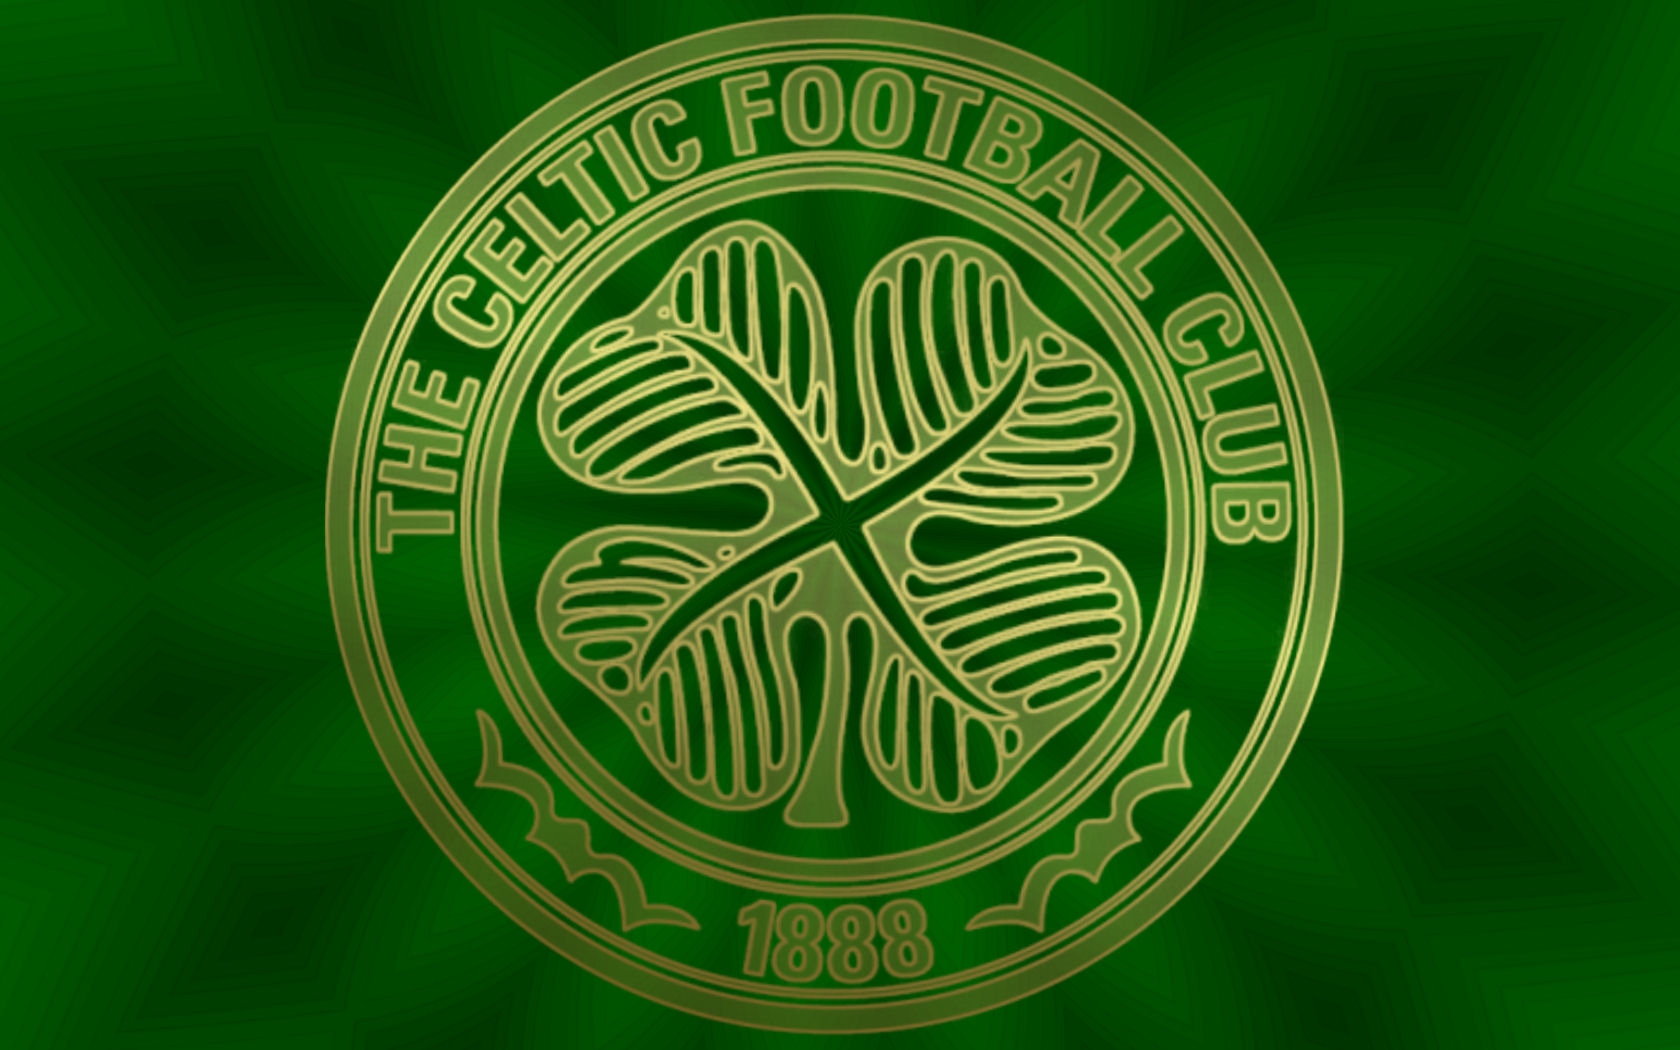 celtic fc wallpaper related keywords suggestions